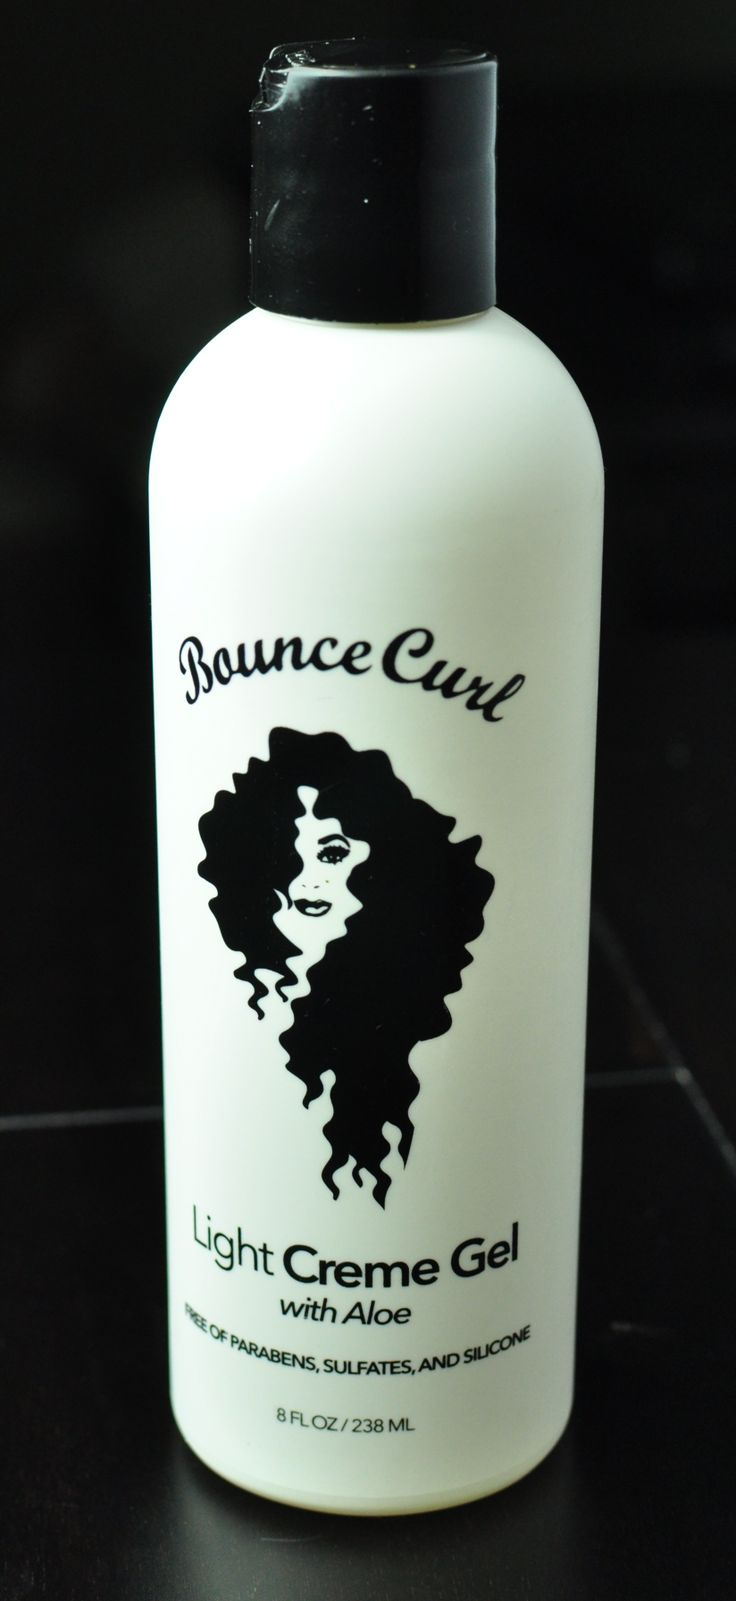 Best  Products For Curly Hair Ideas On Pinterest - Best hair products for curly hair